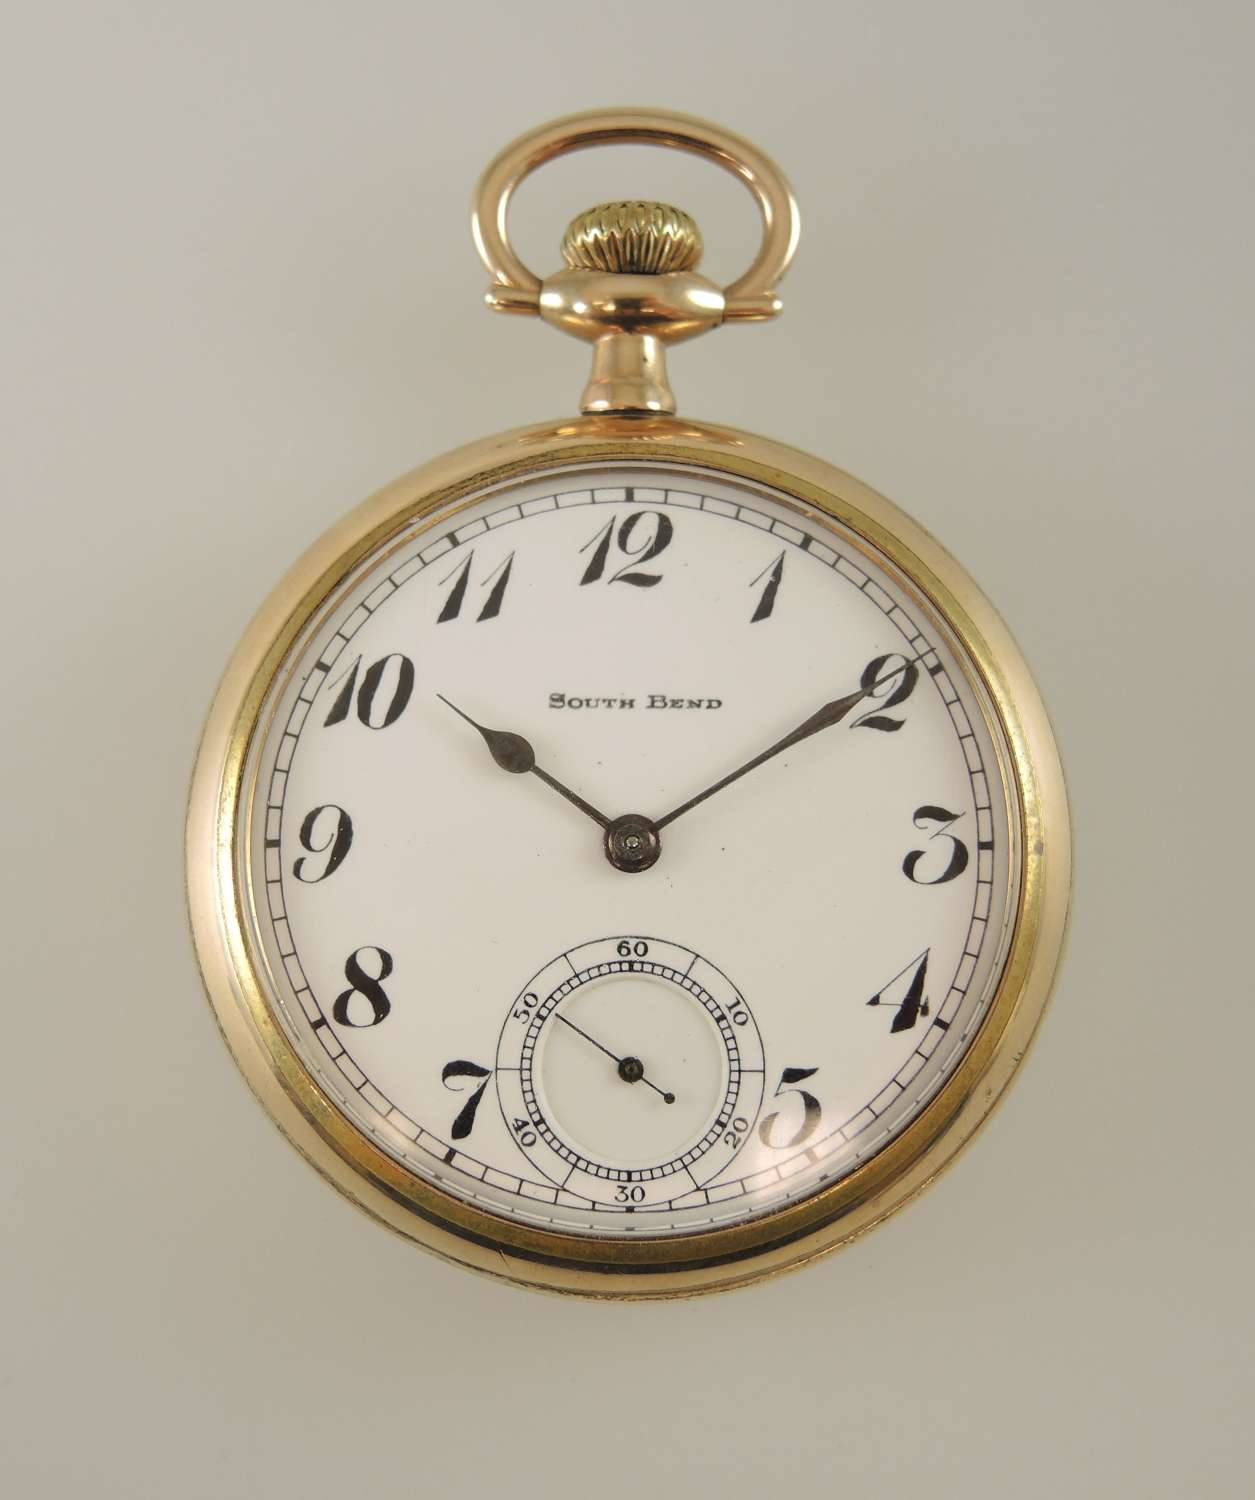 16s 17J South Bend The Studebaker 223 RR grade pocket watch. c1912